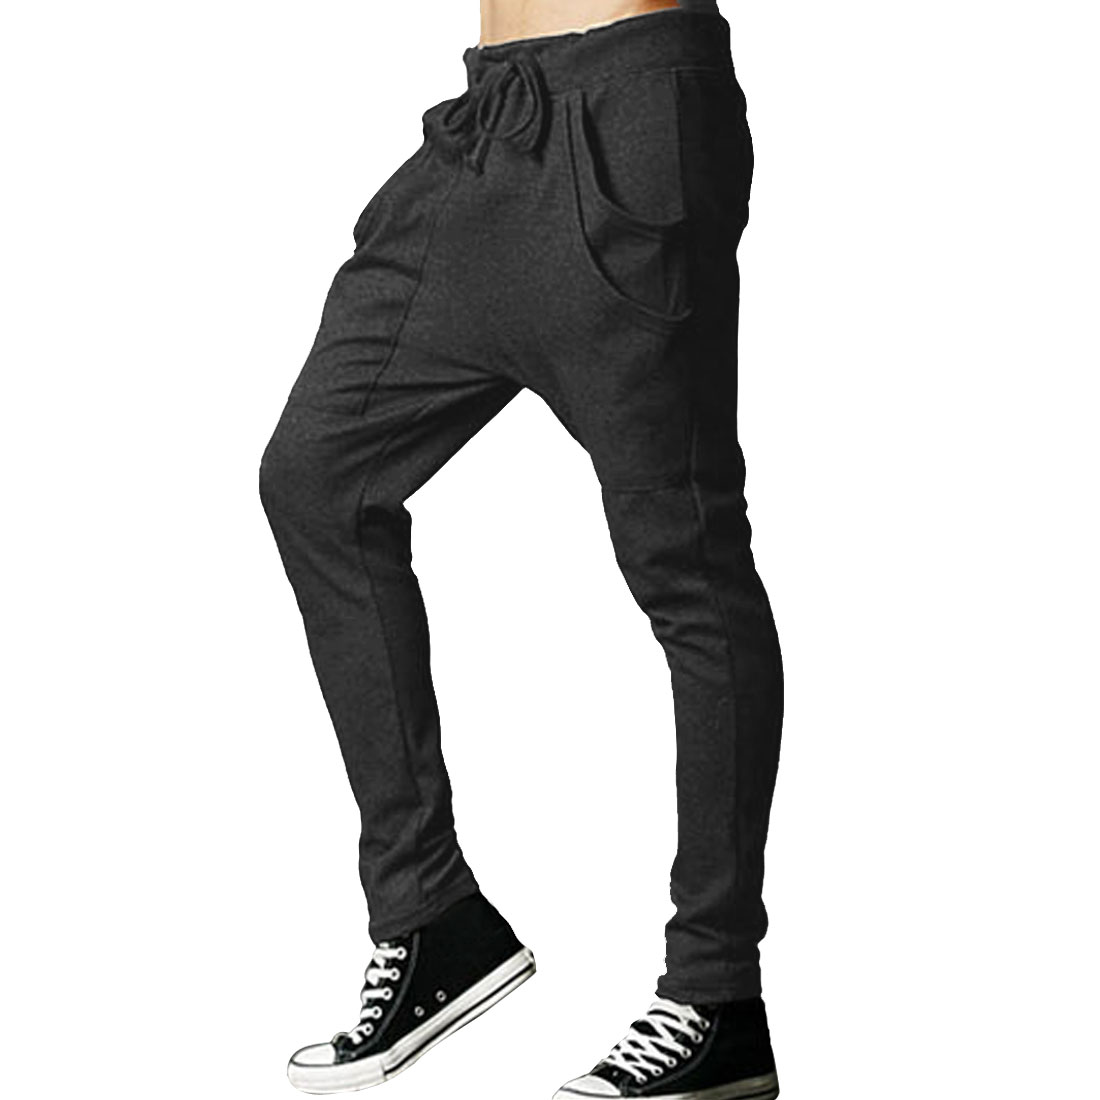 News Men Drawstring Elastic Waist Casual Stretchy Harem Pants | eBay